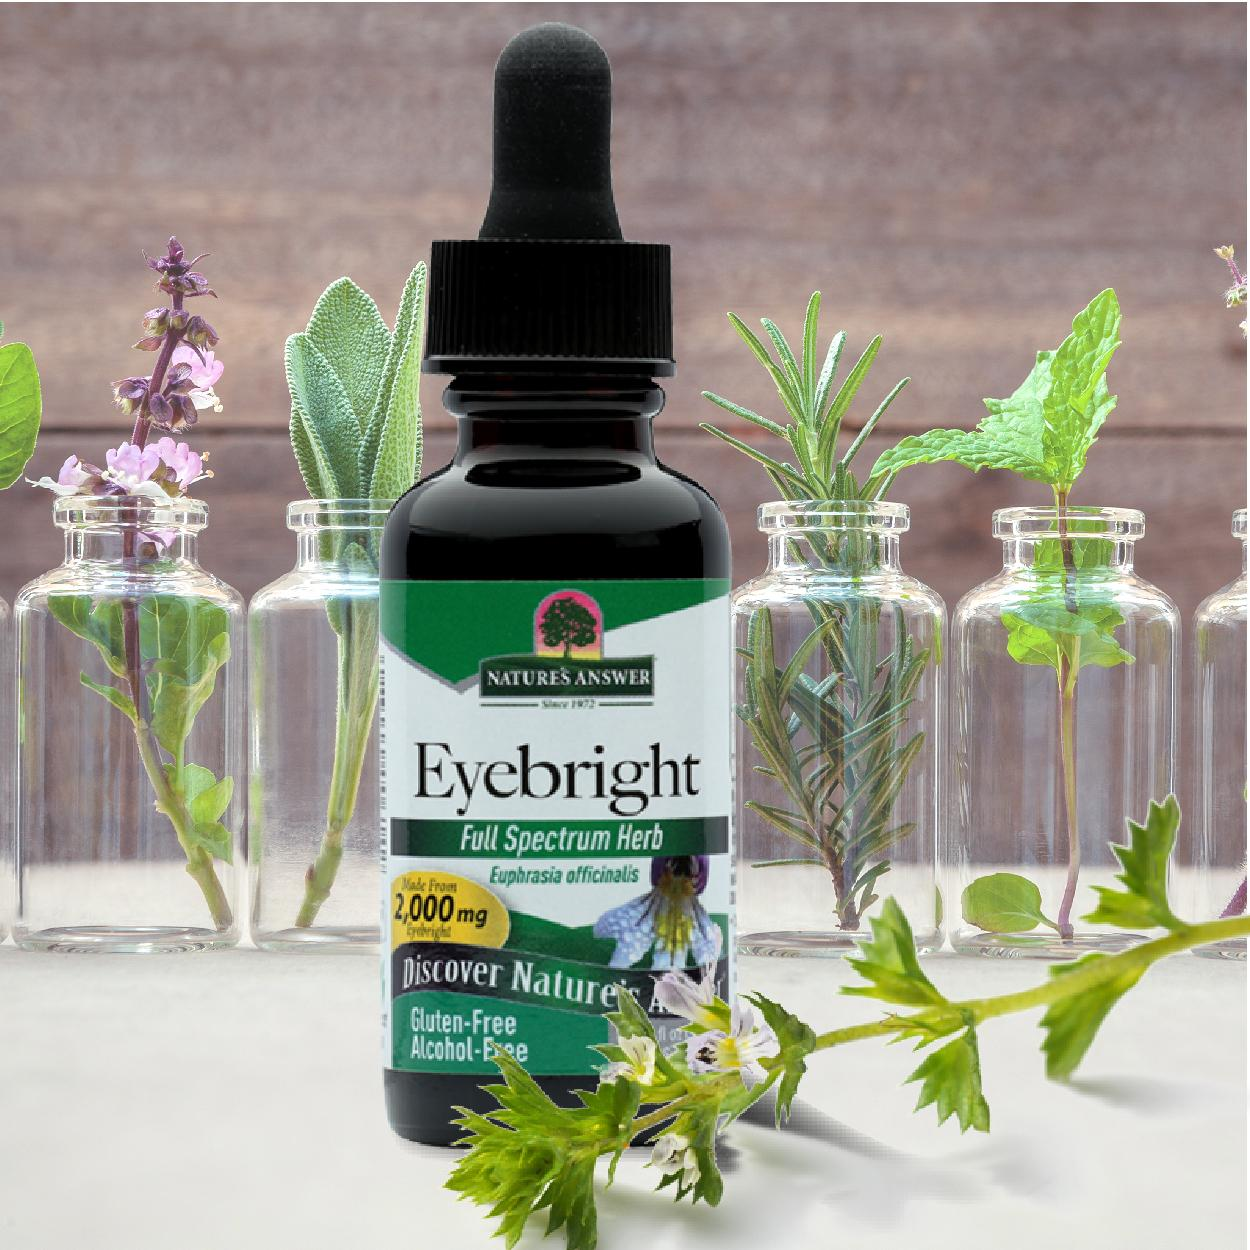 Nature's Answer Alcohol-Free Eyebright Herb, 1-Fluid Ounce